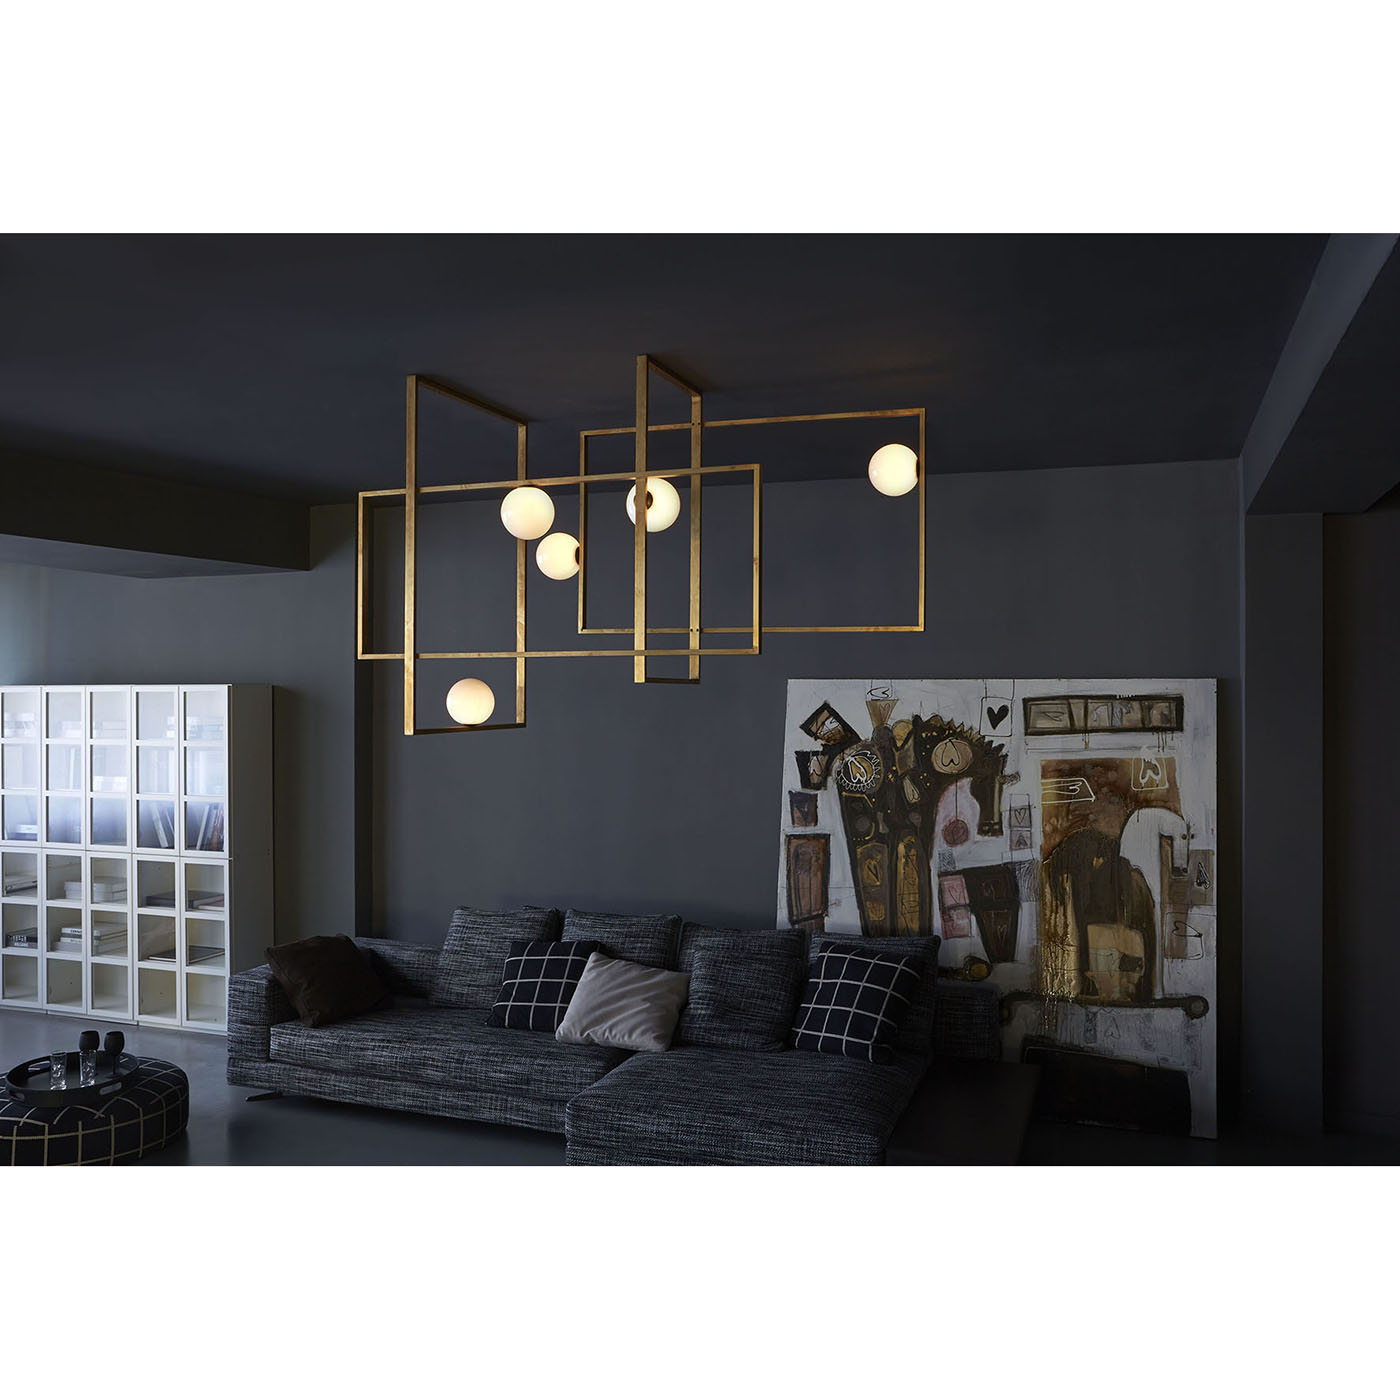 luminaire suspension haut de gamme mondrian idkrea collection. Black Bedroom Furniture Sets. Home Design Ideas